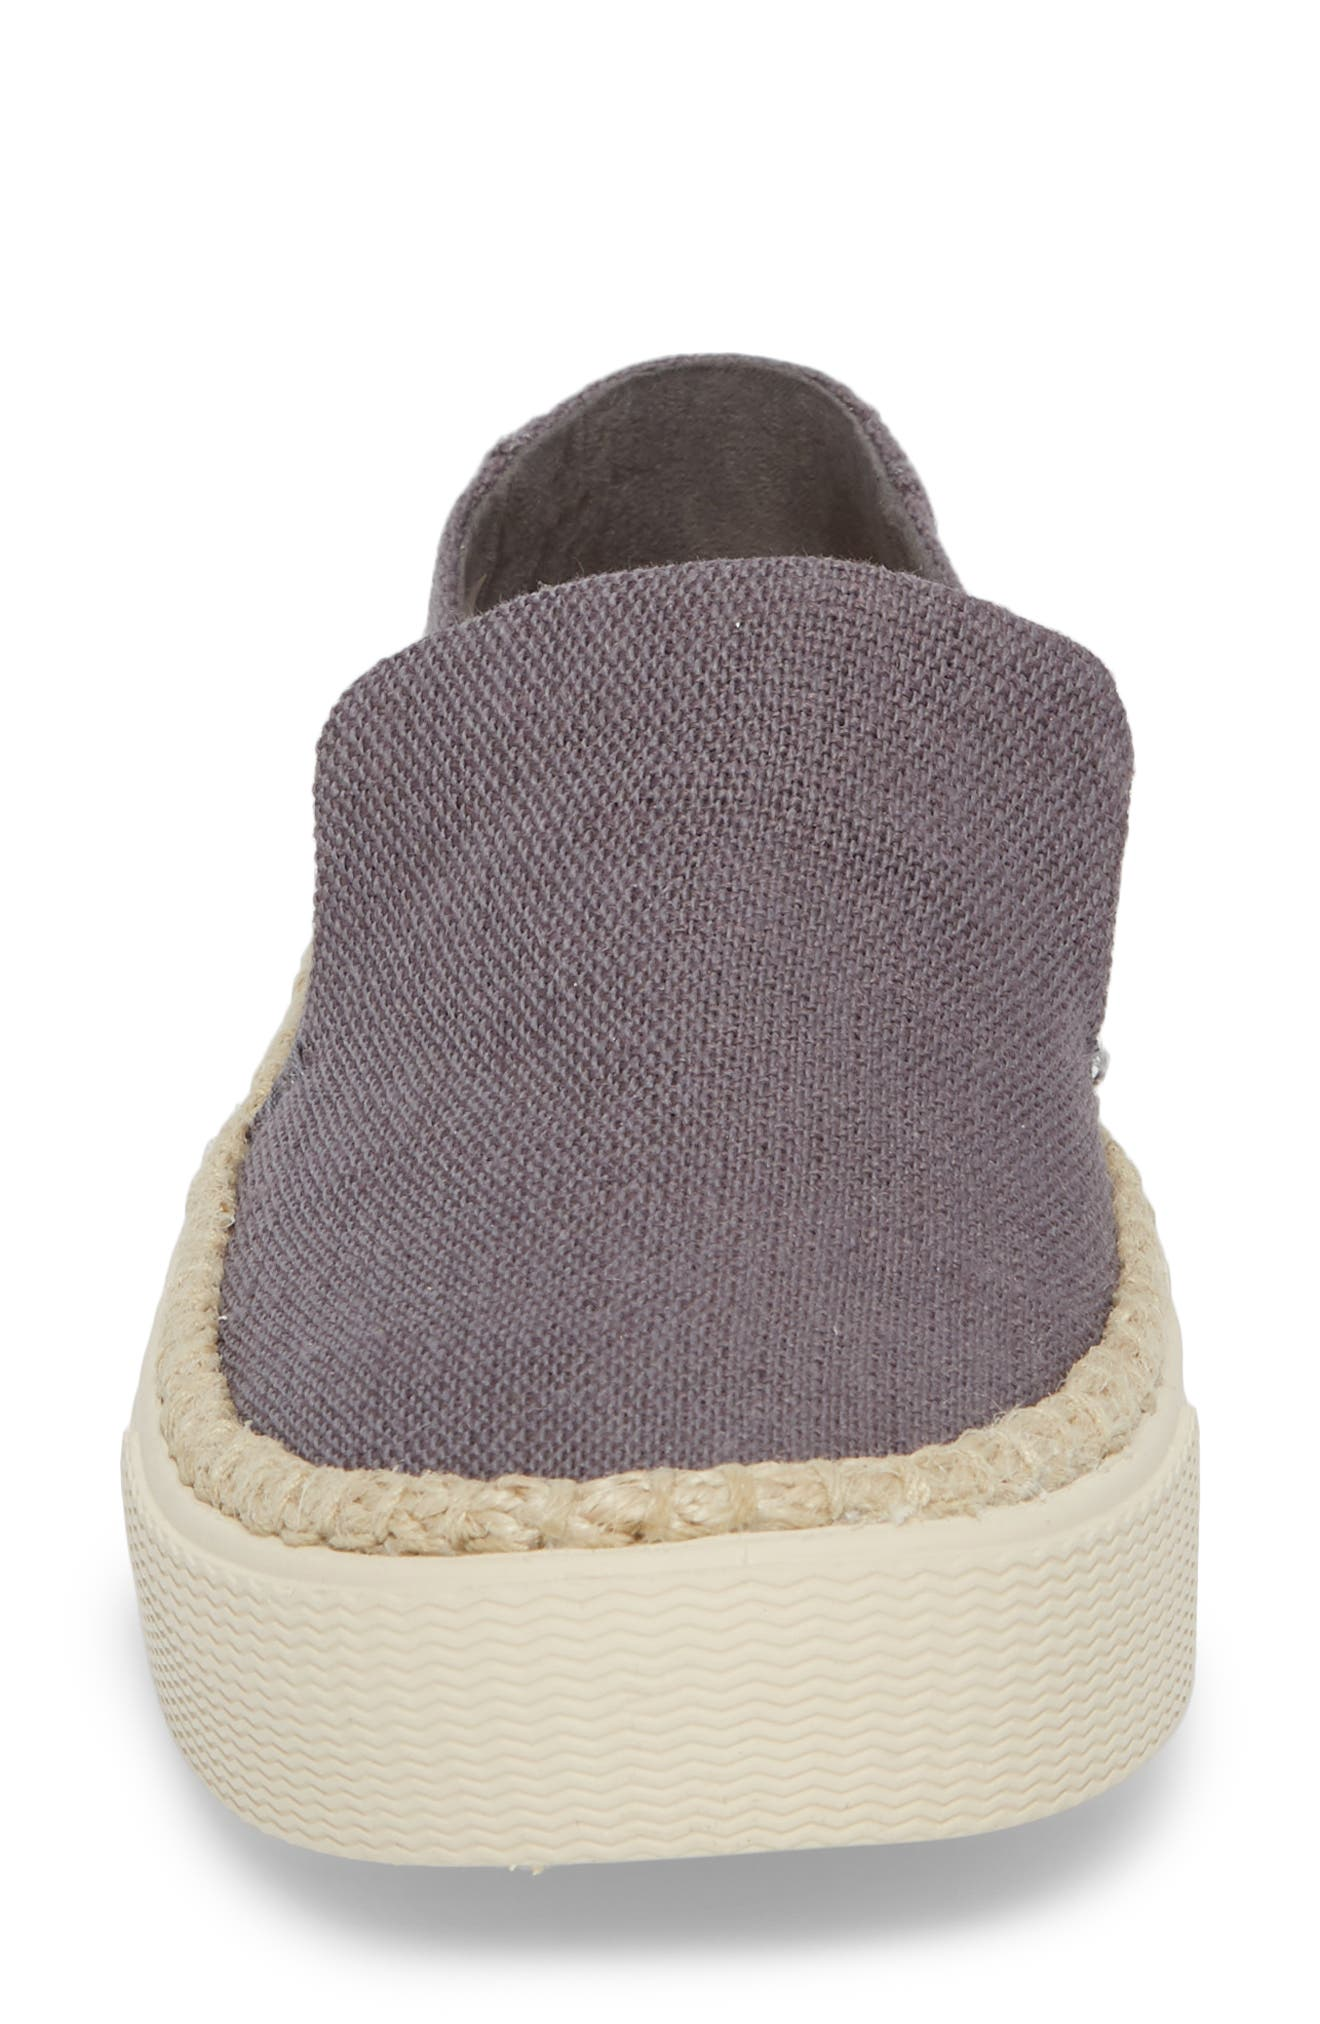 Sunset Slip-On,                             Alternate thumbnail 4, color,                             Shade Heritage Canvas/ Rope